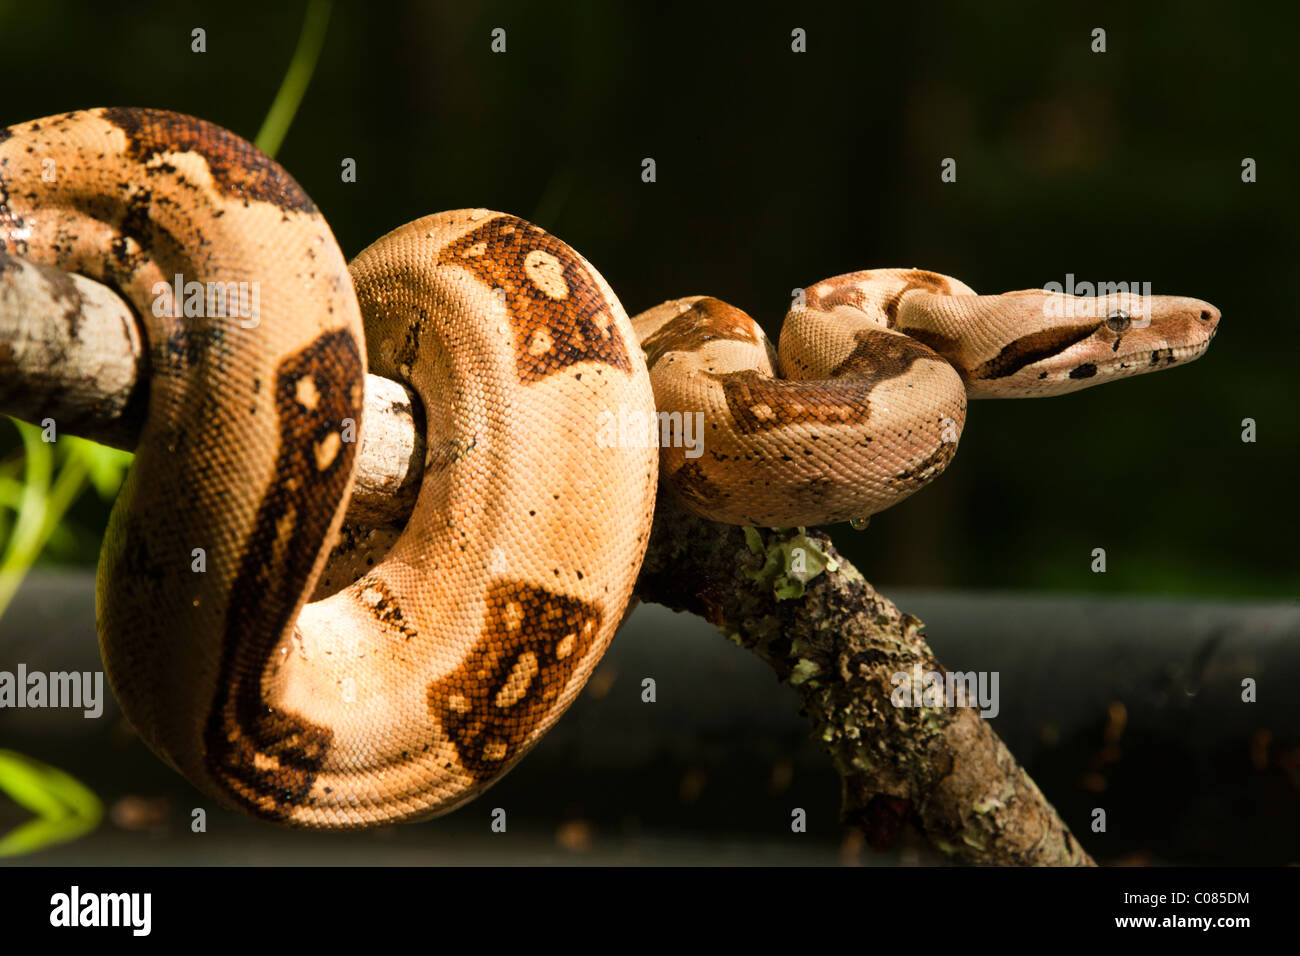 Boa Constrictor clinging on stick, Pennsylvania, USA - Stock Image